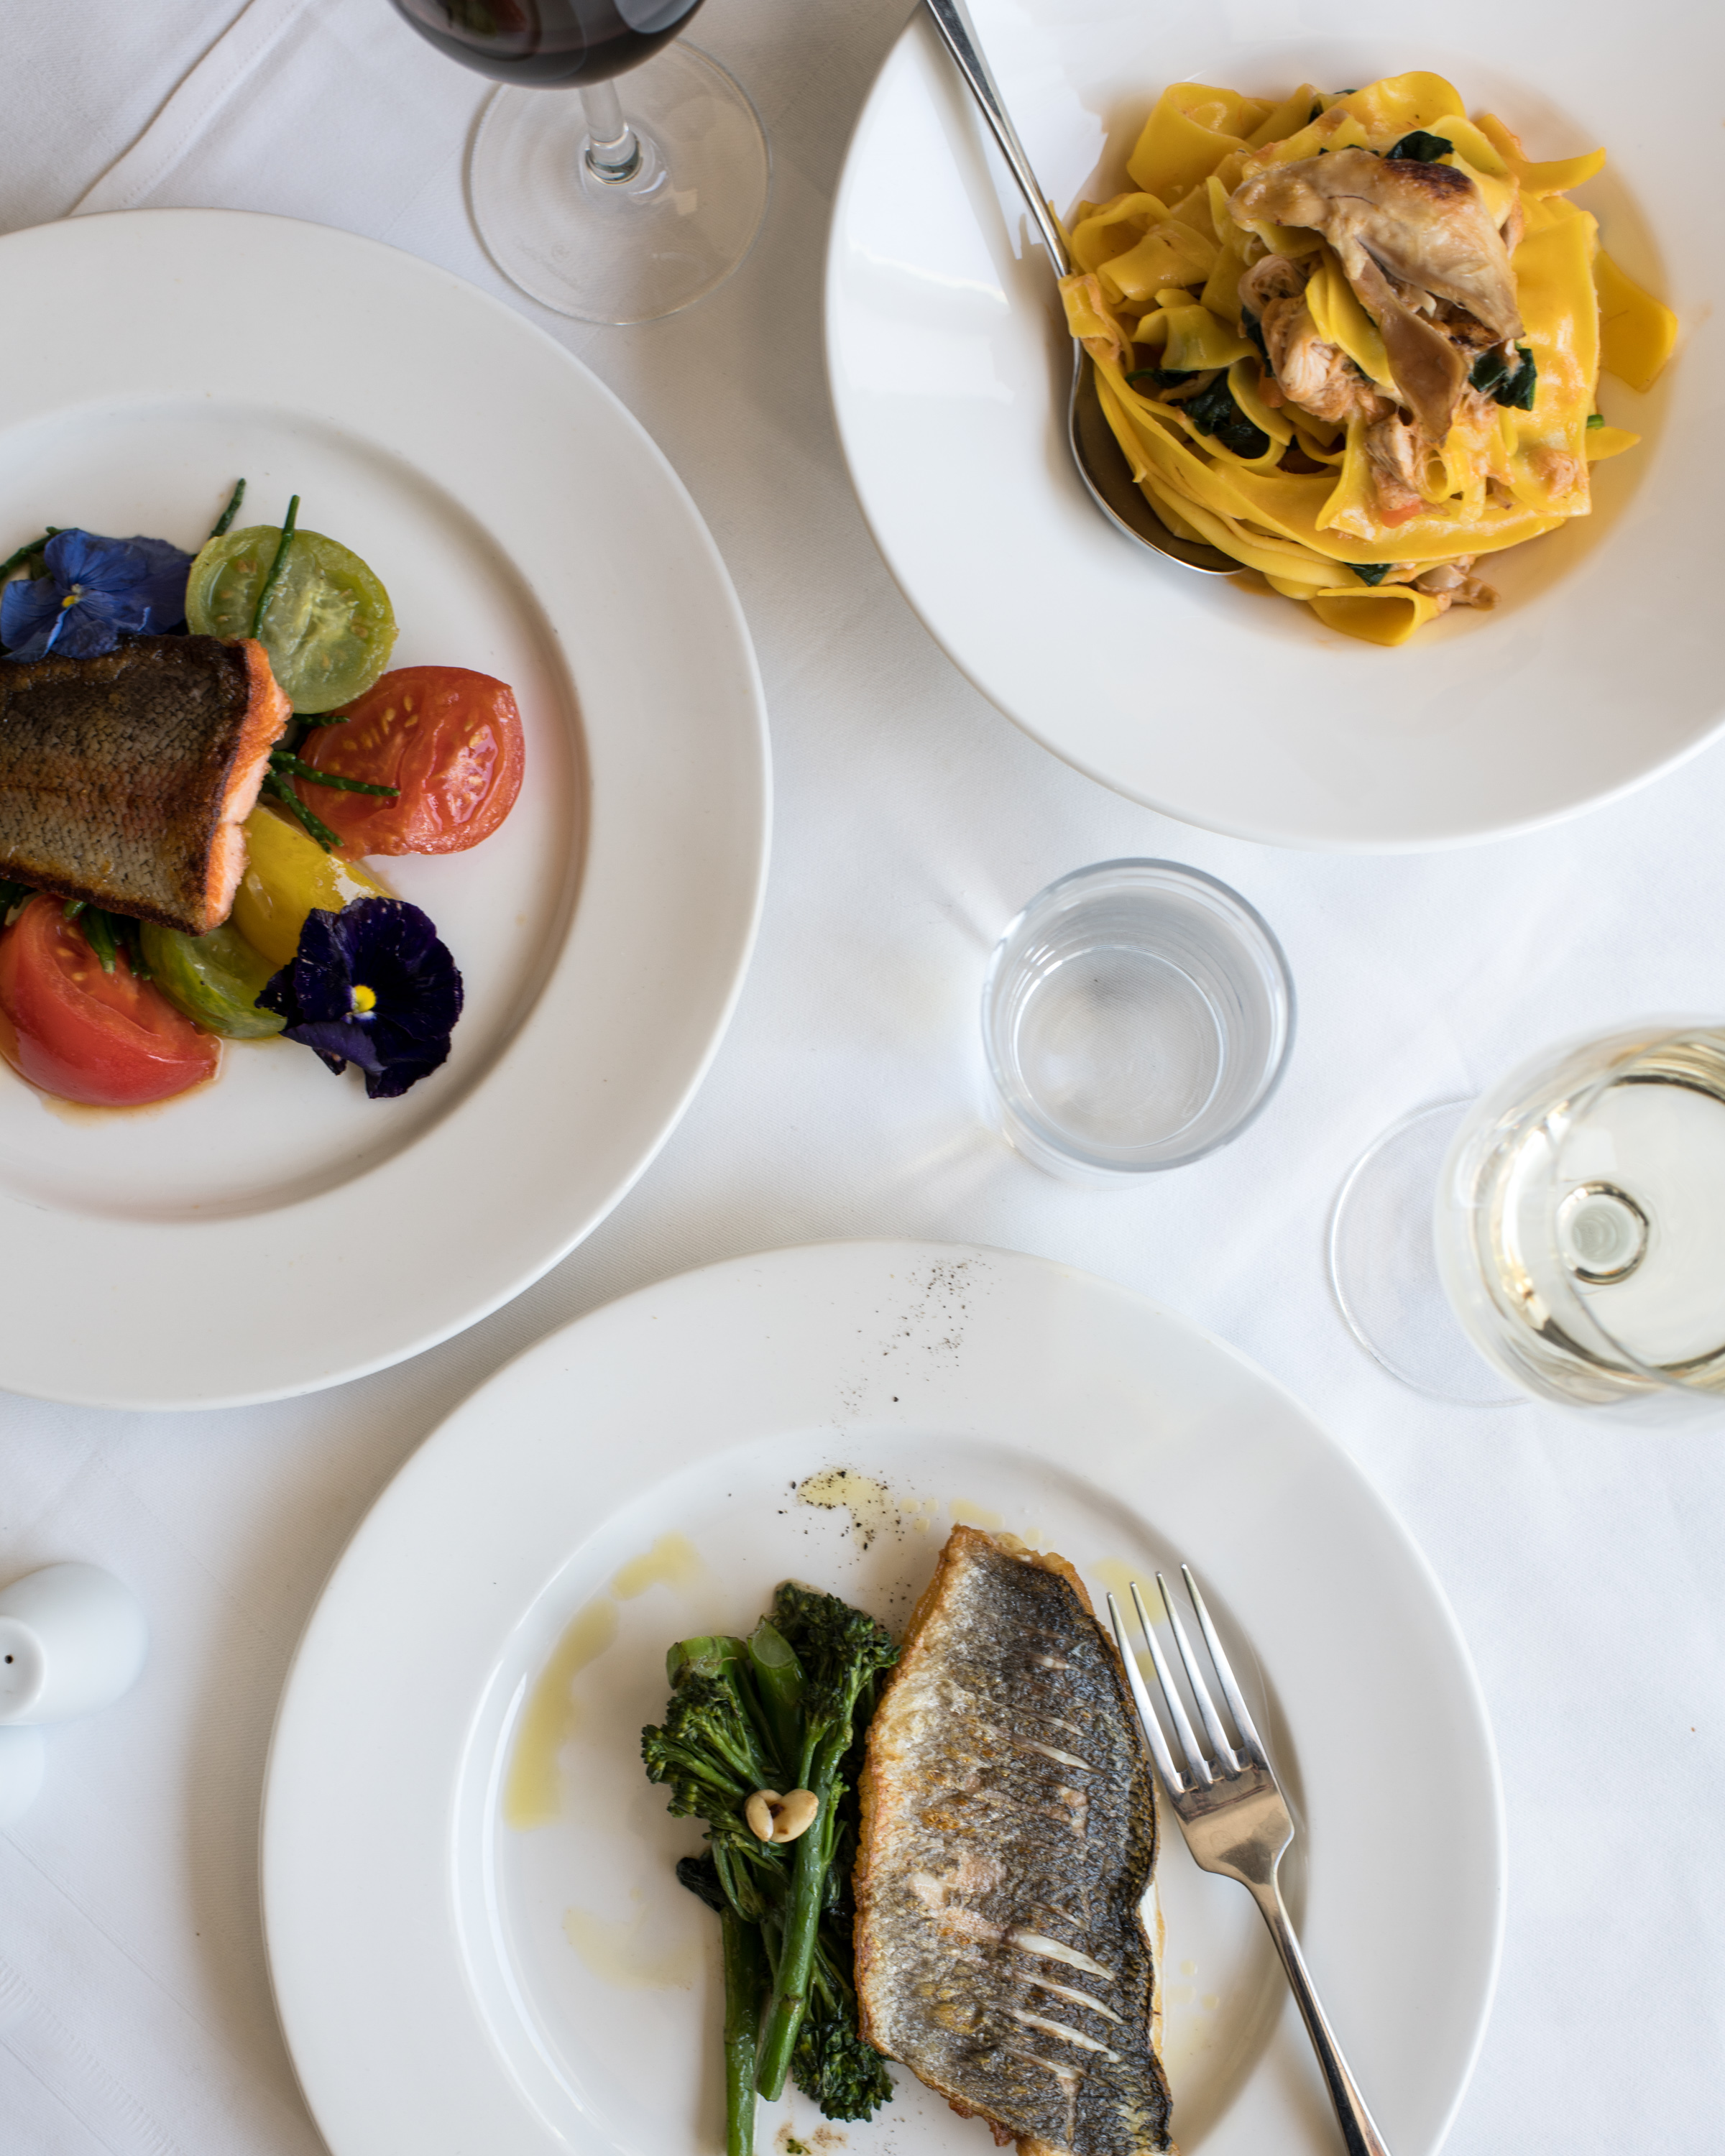 Some of our Mains (from the bottom): Sea Bream, Sea Trout, Pappardelle Rabbit.